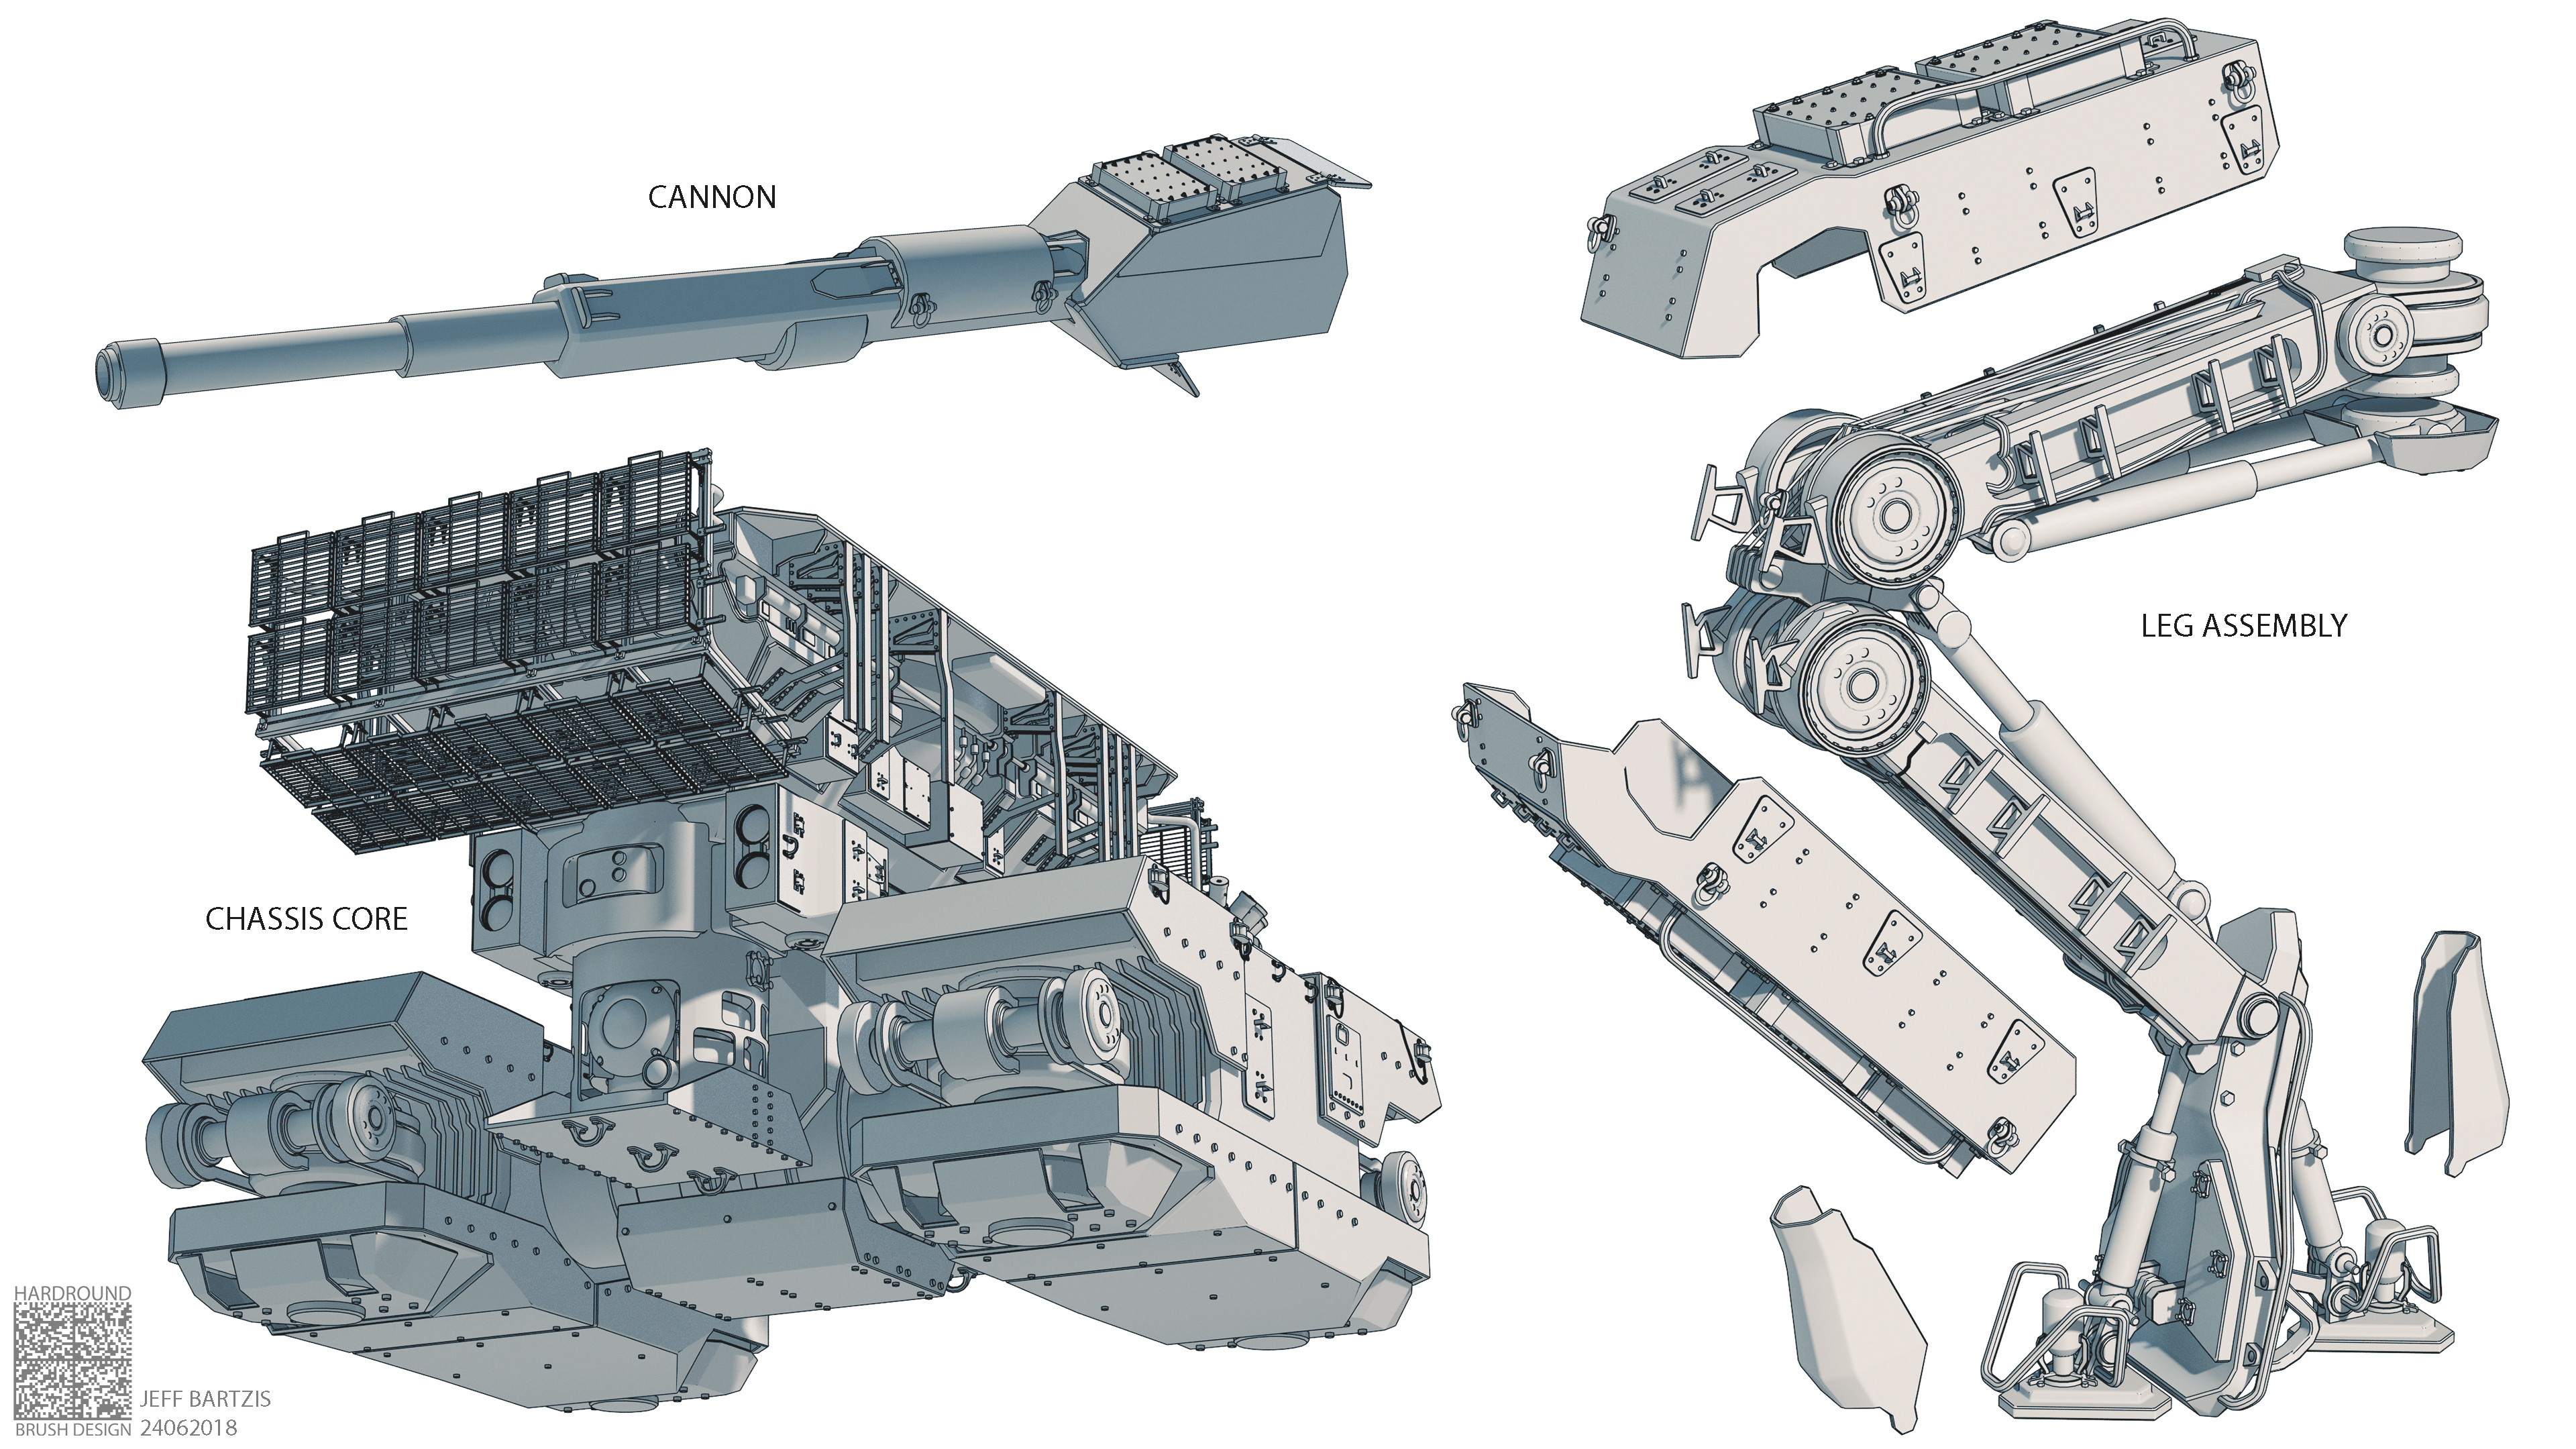 Detail view of leg mechanism, and other components.